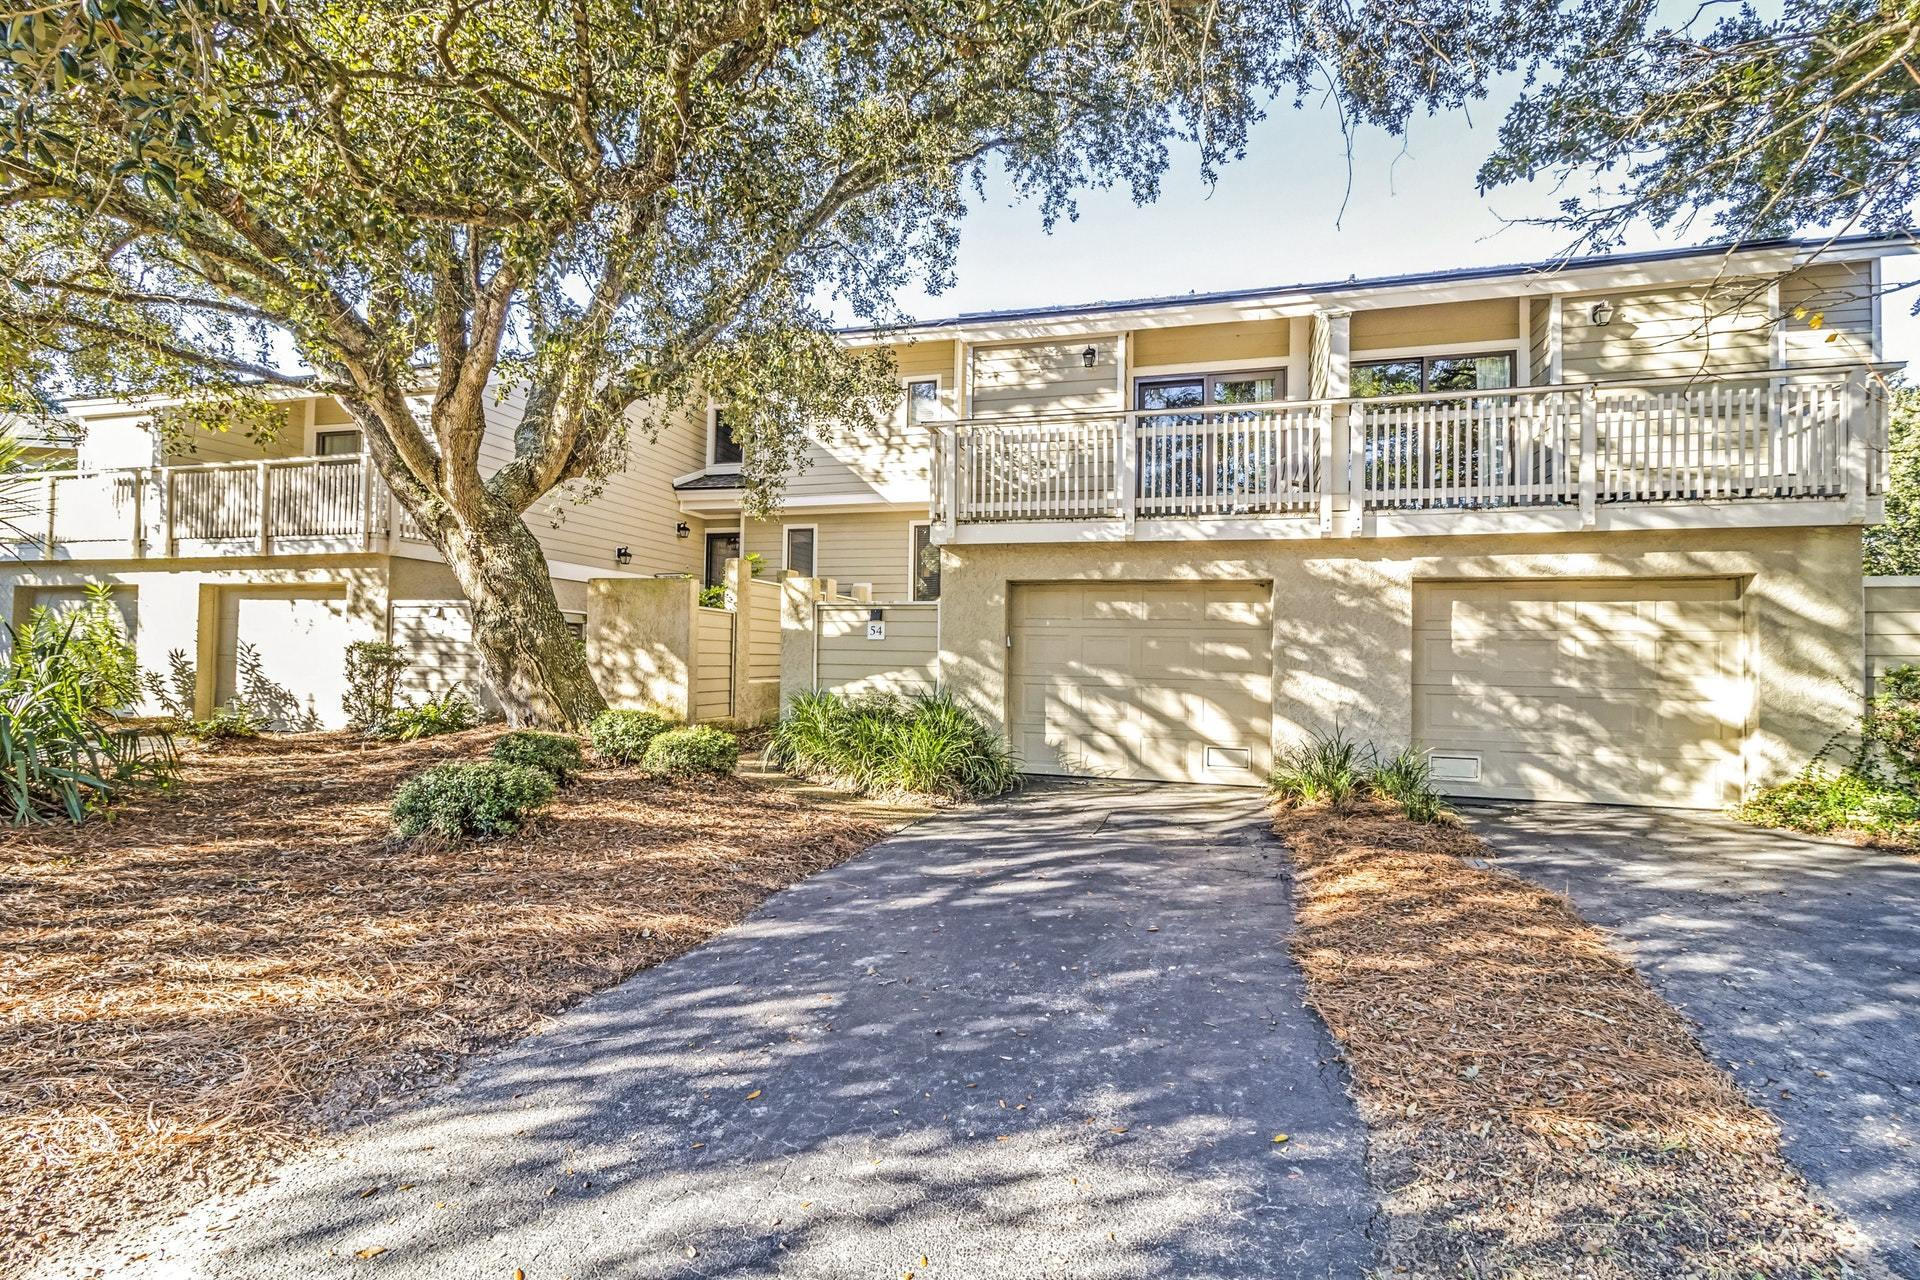 54 Fairway Dunes (1/13) Isle Of Palms, SC 29451